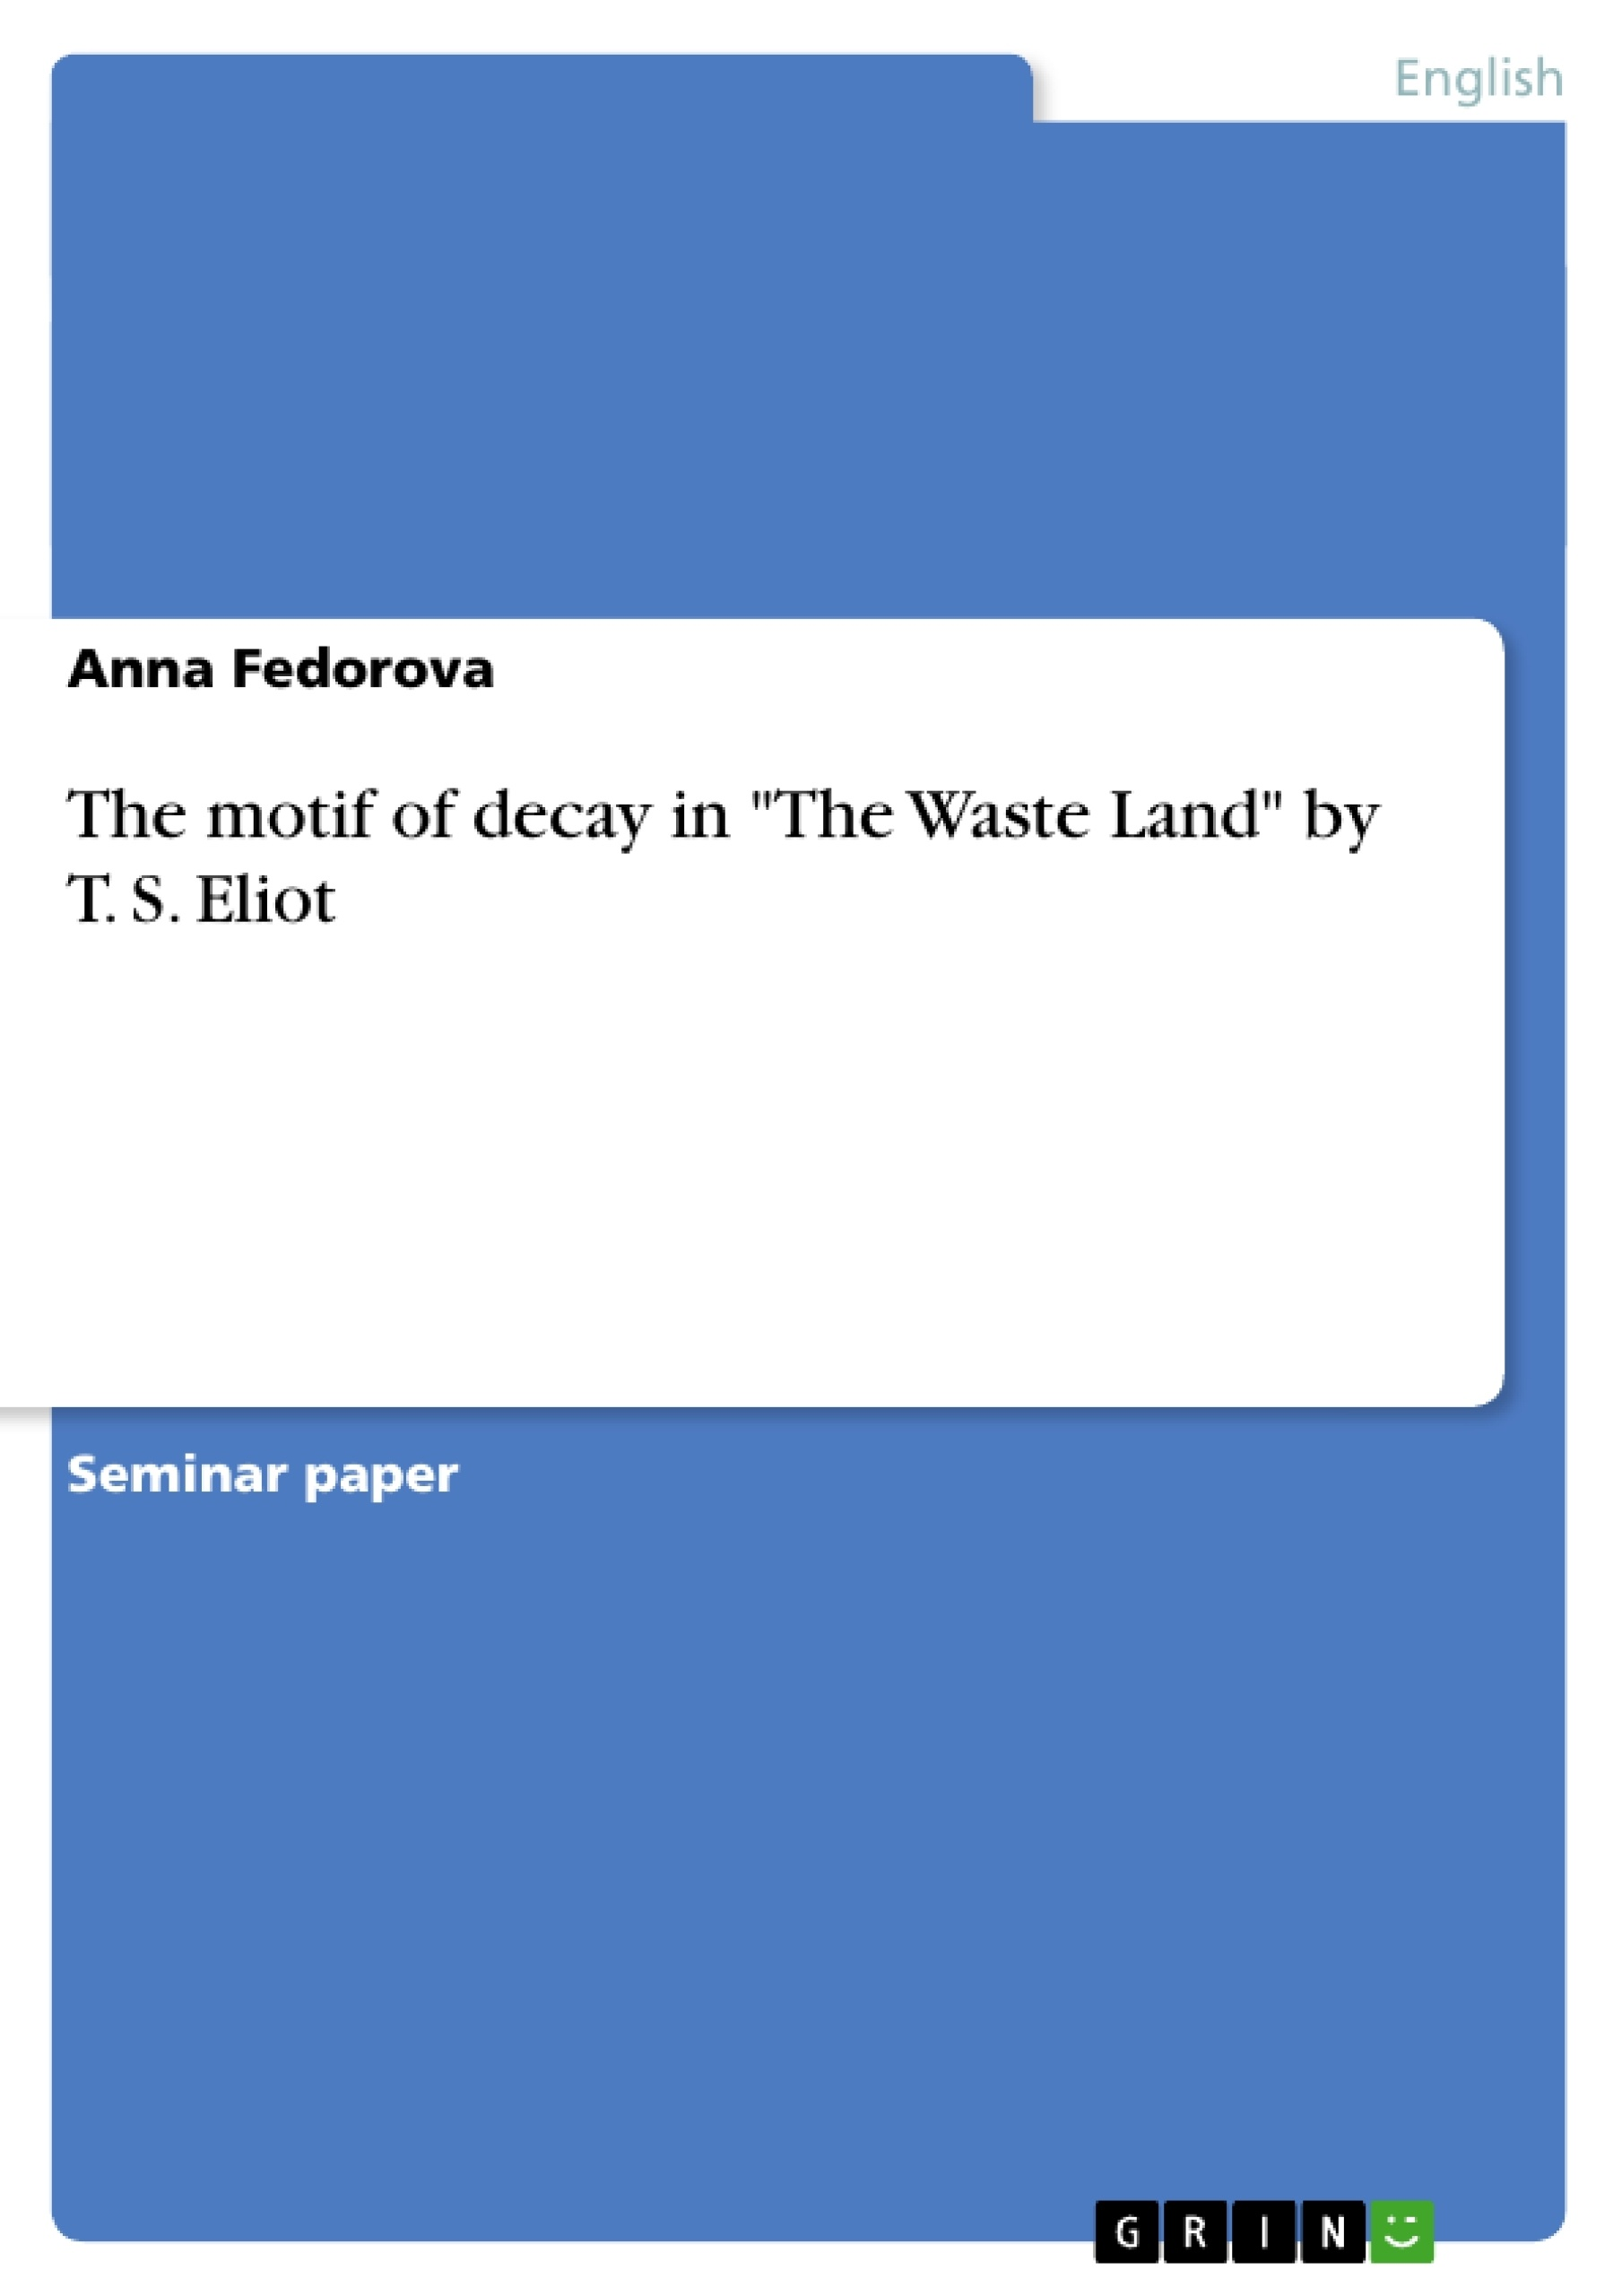 ts eliot term paper A literary analysis of the works of ts eliot, with an emphasis on the love song of j alfred prufrock (2004, may 16)  term papers research paper topics .